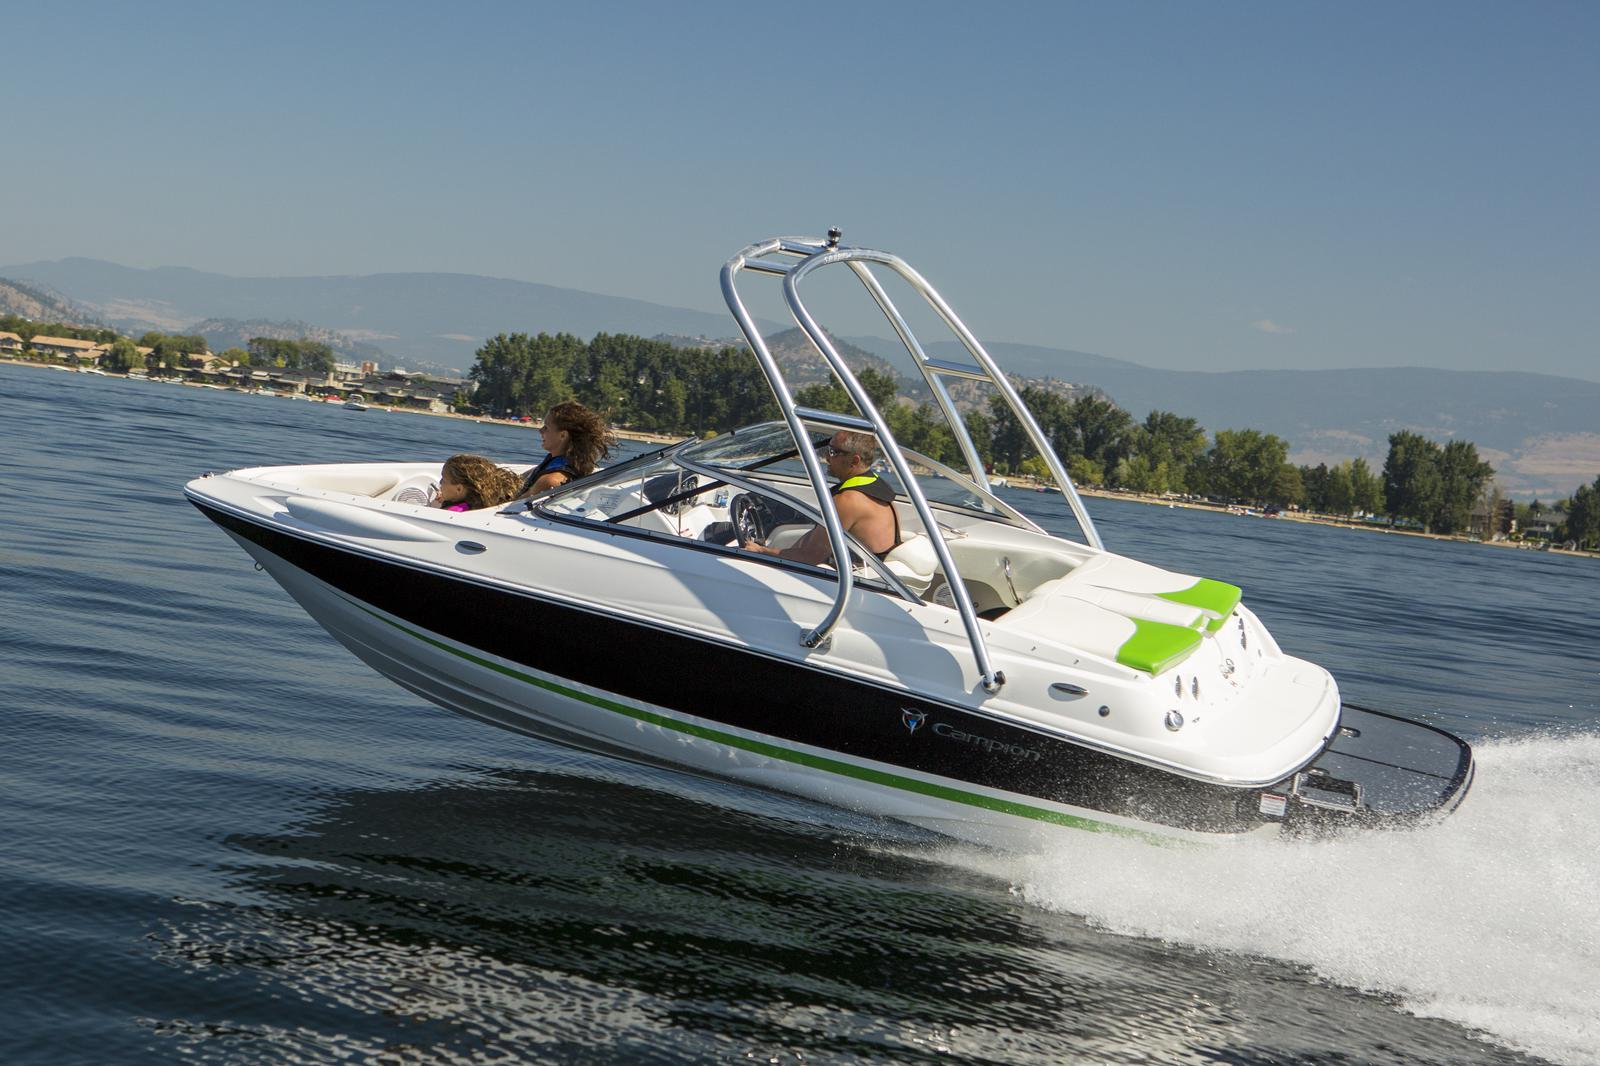 Campion Boats in Duncan and Lake Cowichan, BC